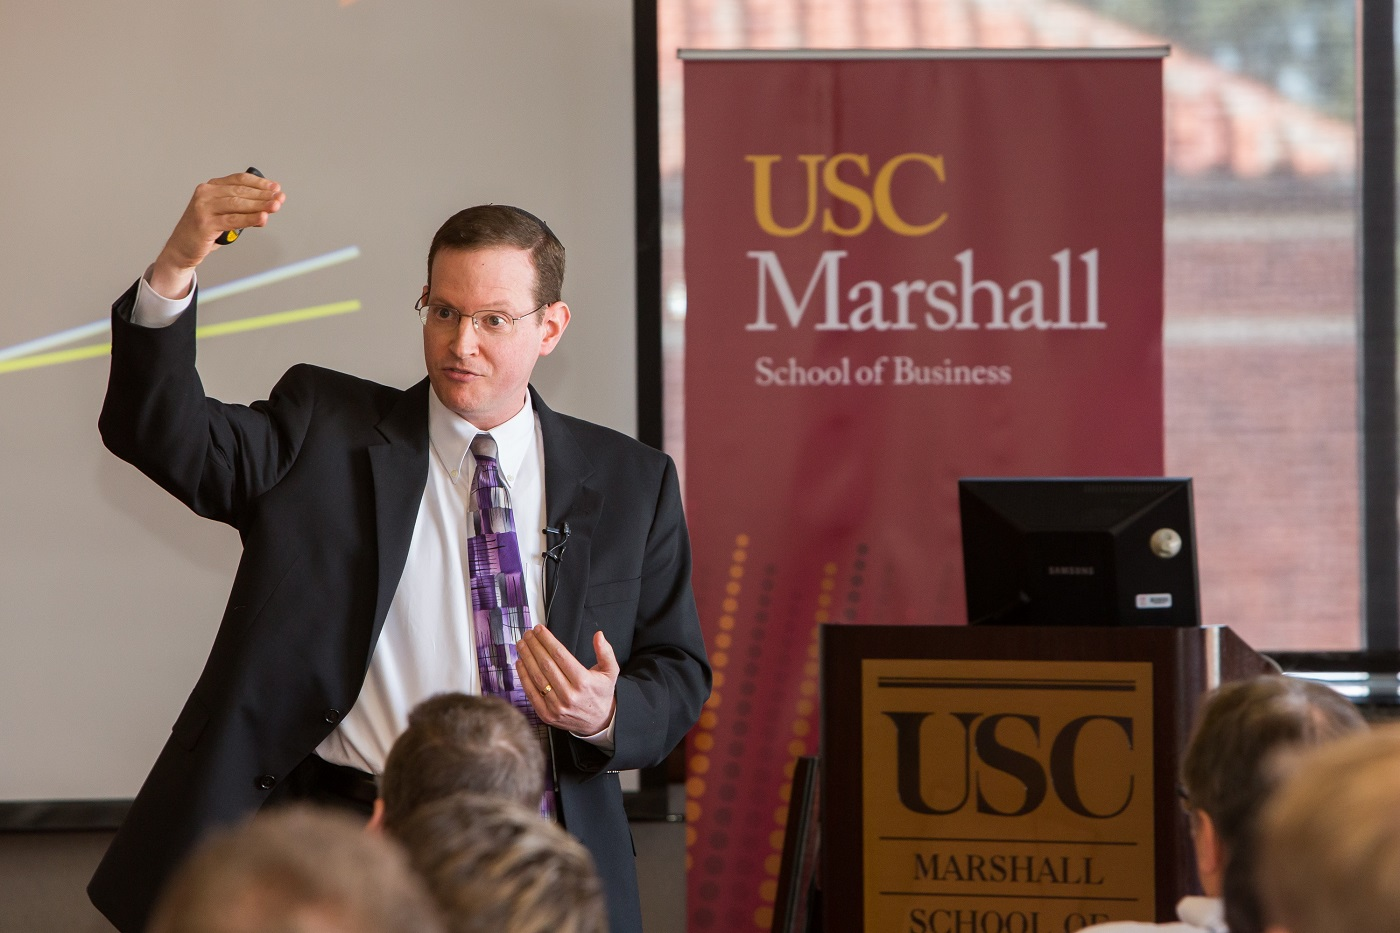 Noam Wasserman Photo from USC Marshall School of Business Website at https://www.marshall.usc.edu/news/founder-central